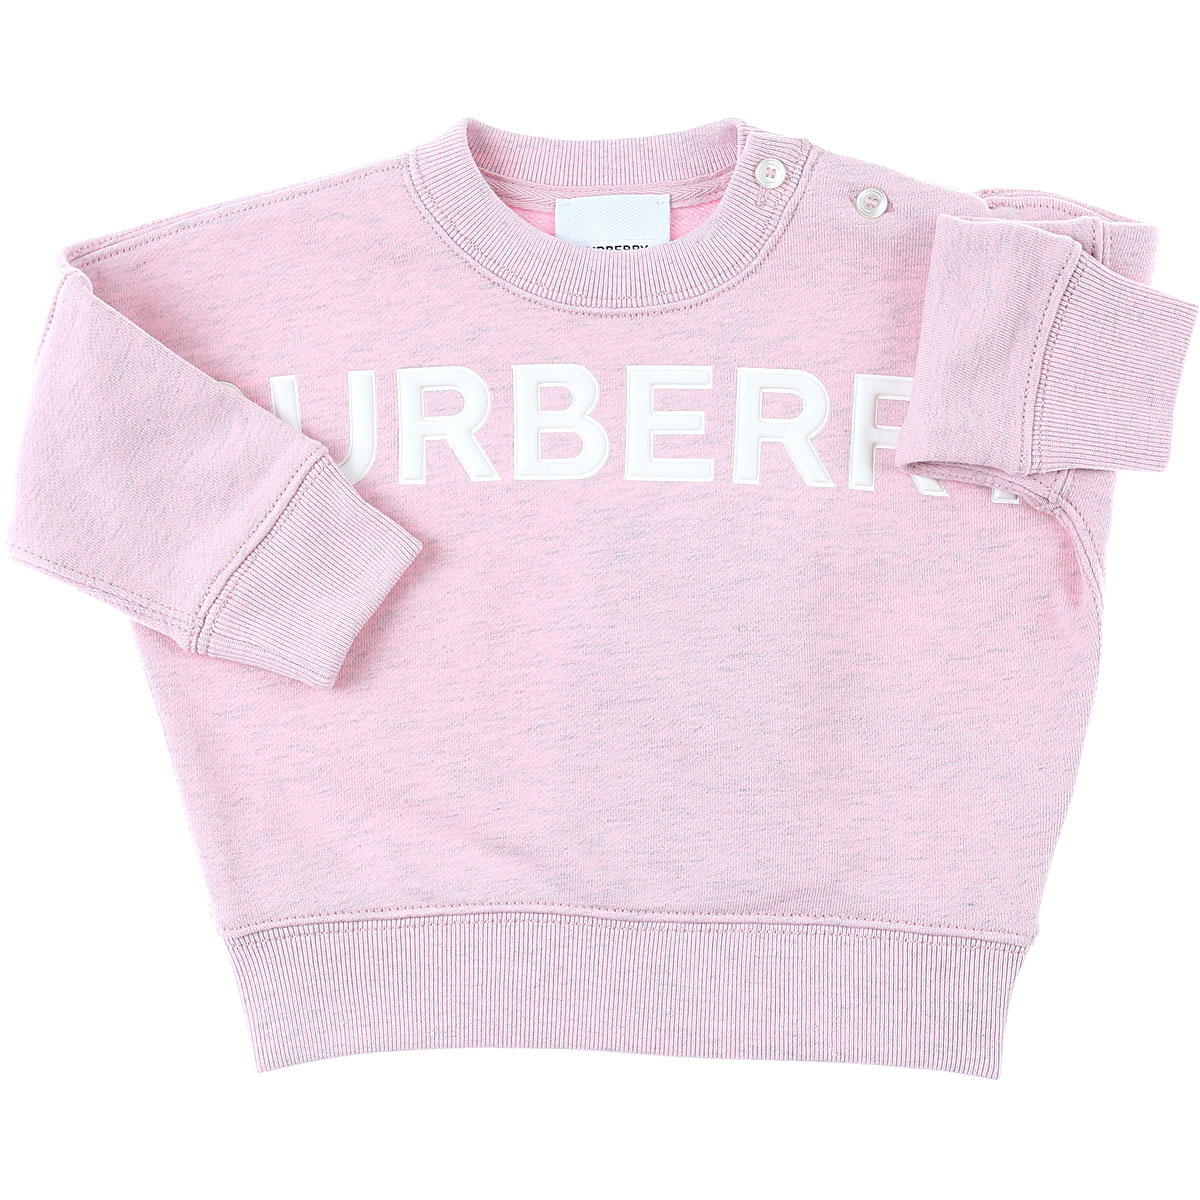 Burberry Baby Sweatshirts & Hoodies for Girls On Sale in Outlet, Pink, Cotton, 2019, 12M 6M